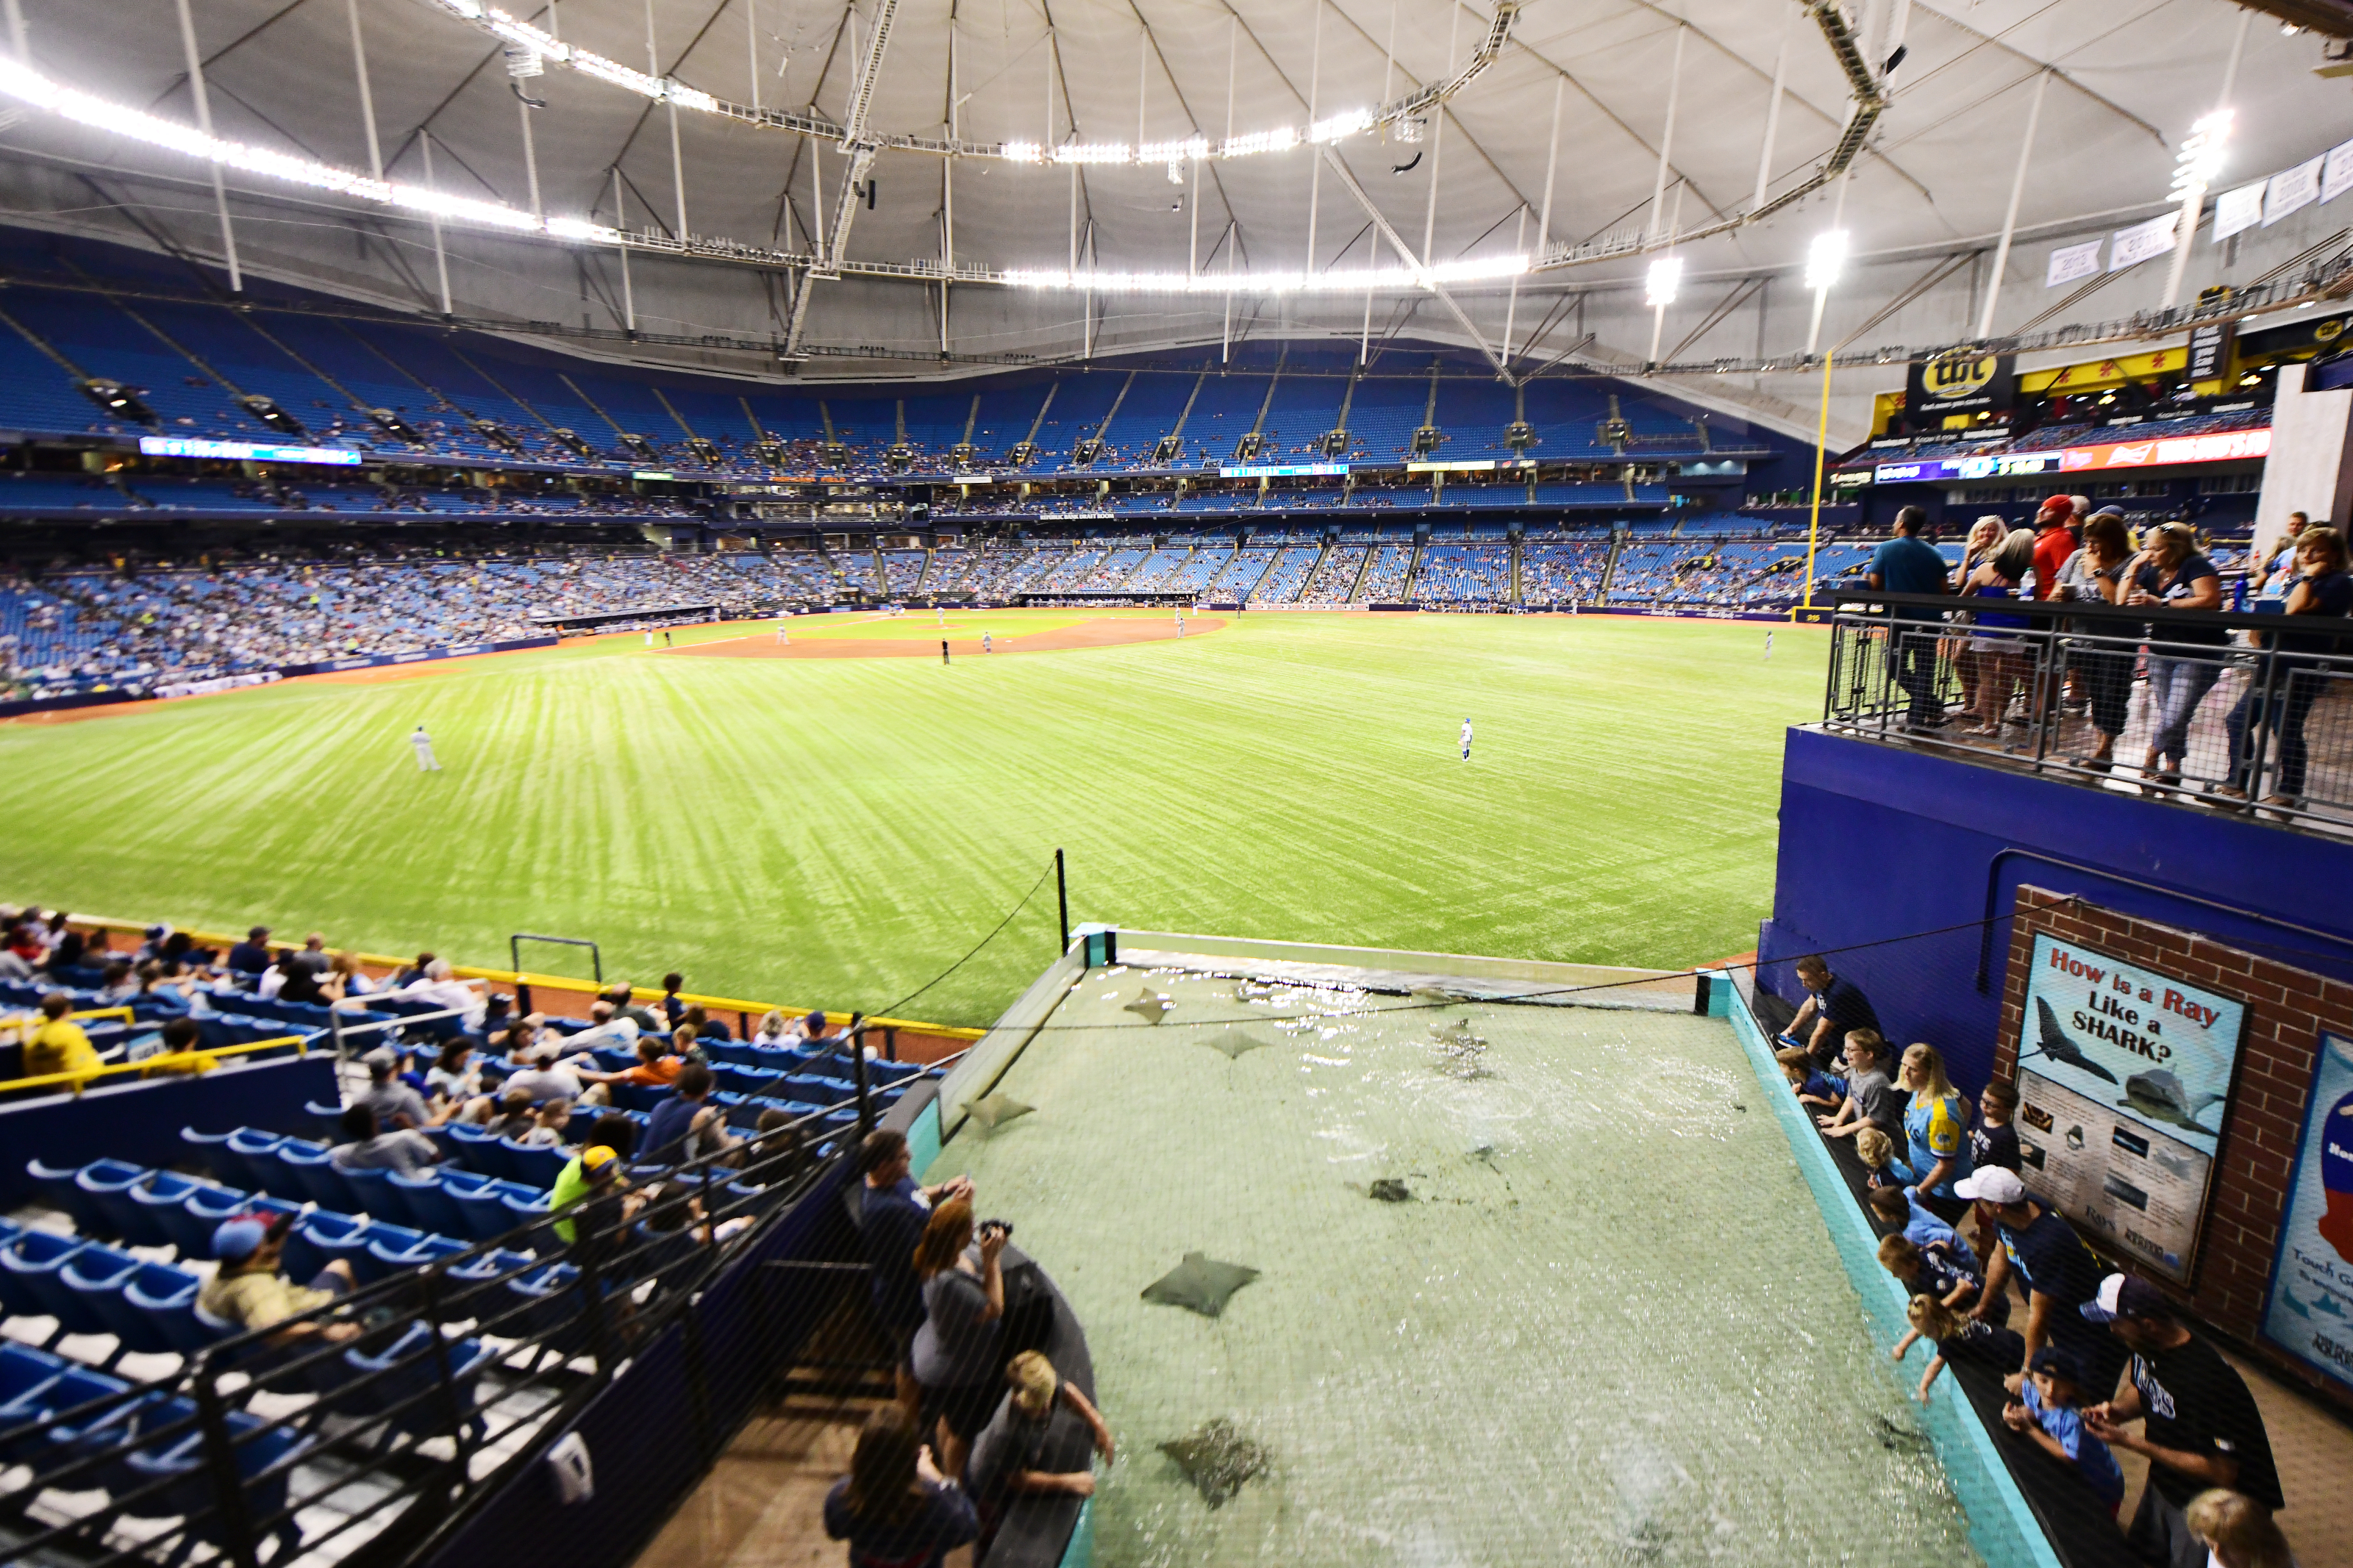 tampa bay rays show creativity in their new stadium plans https calltothepen com 2019 01 05 tampa bay rays show creativity new stadium plans